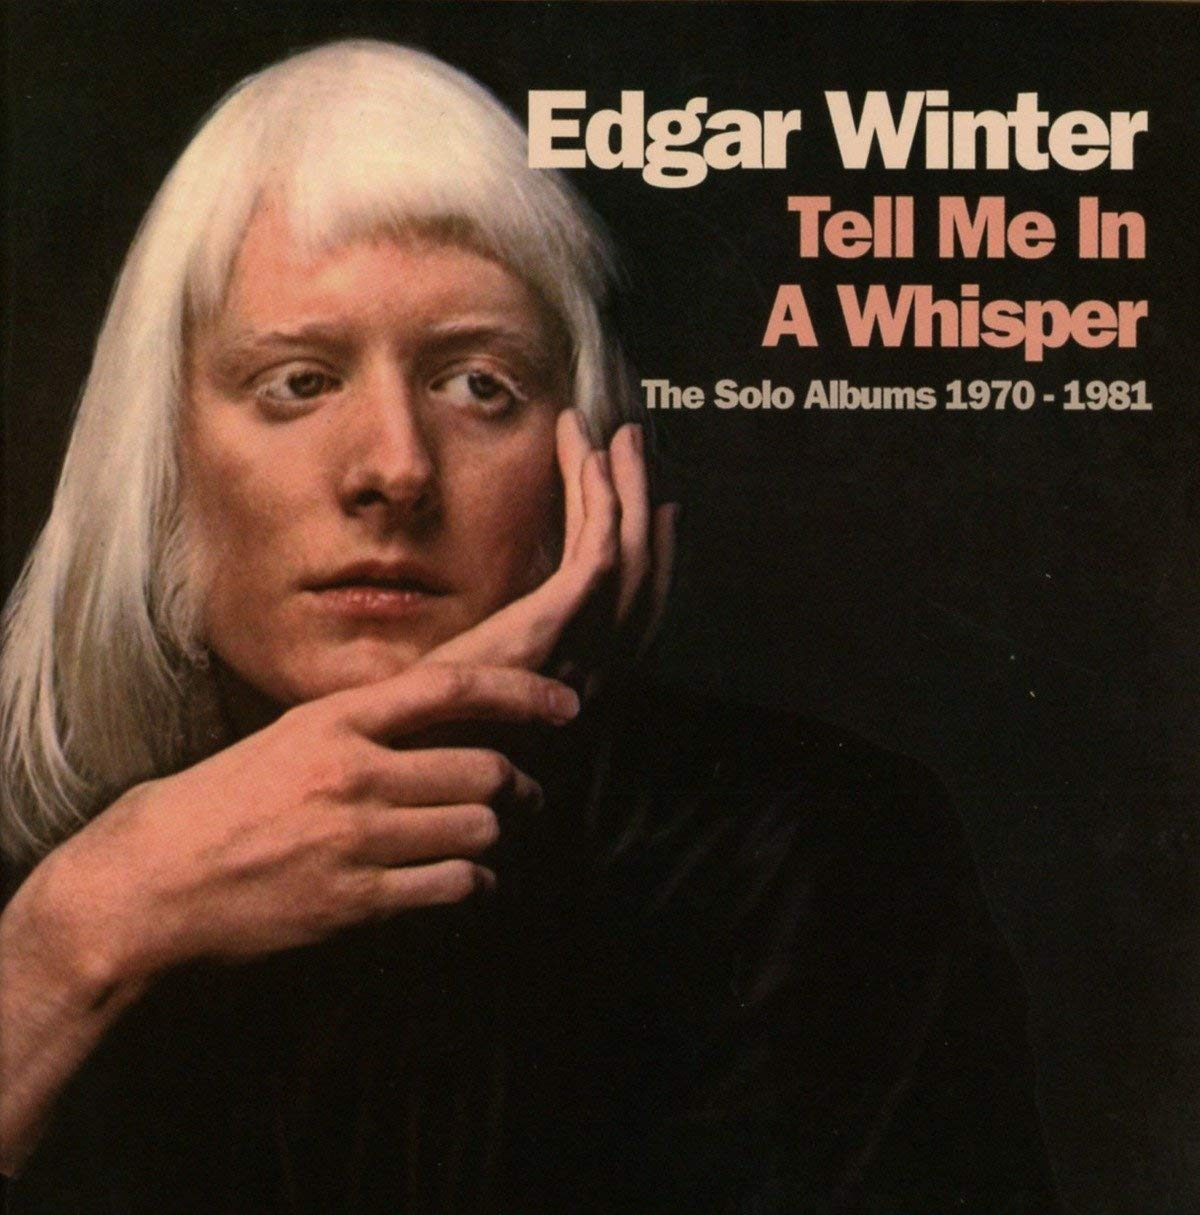 Tell Me in a Whisper Tell Me in a Whisper. The Solo Albums 1970-1981 (4 CD) tell me what